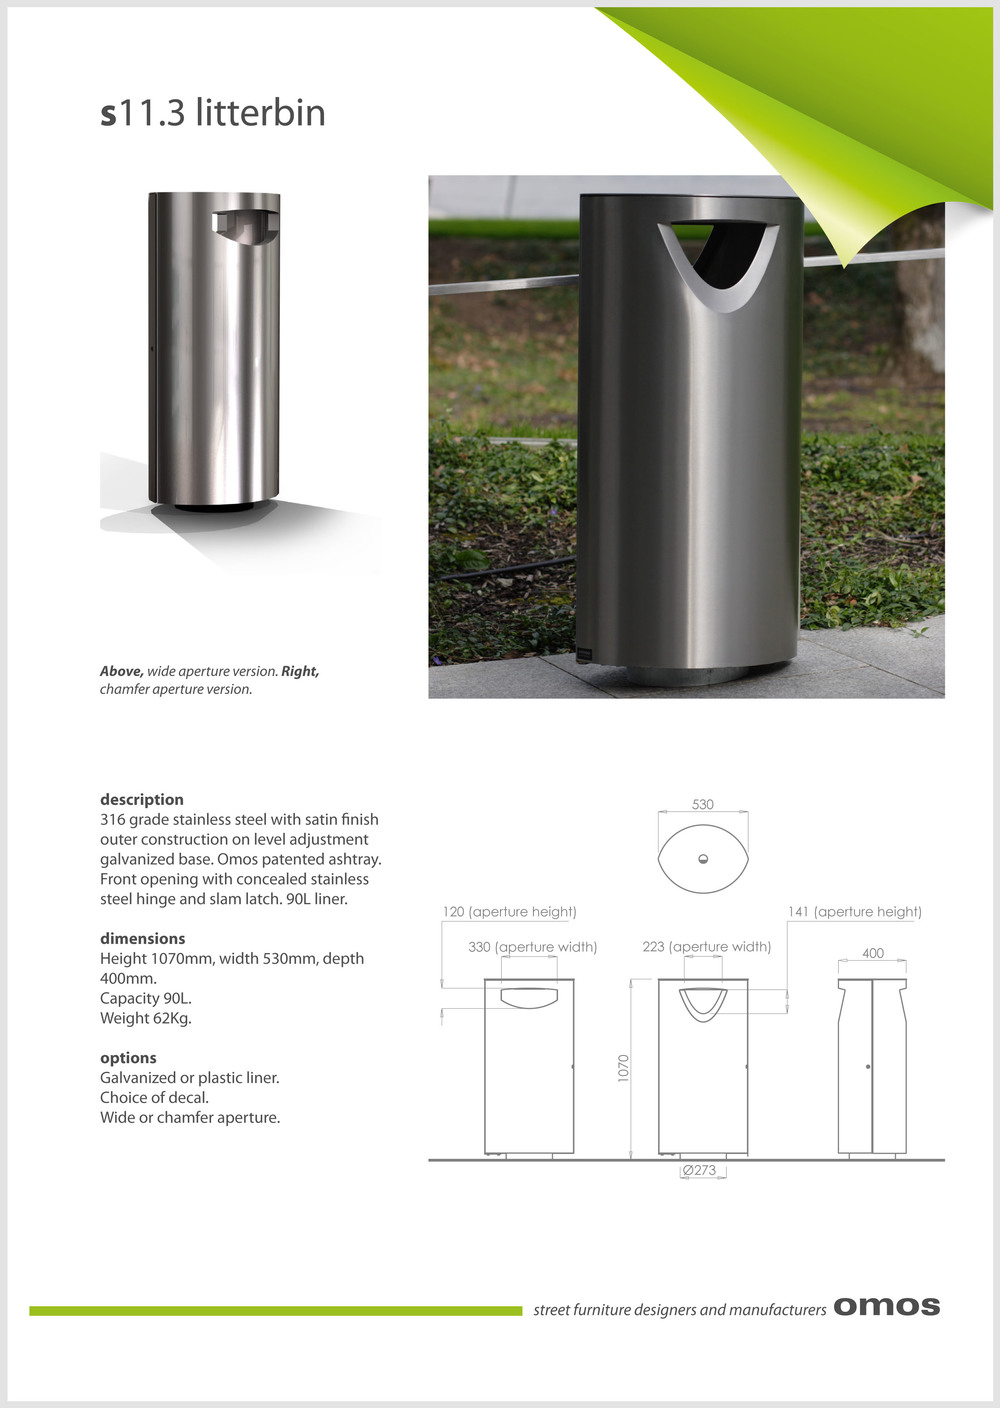 s11.3 litter bin data sheet